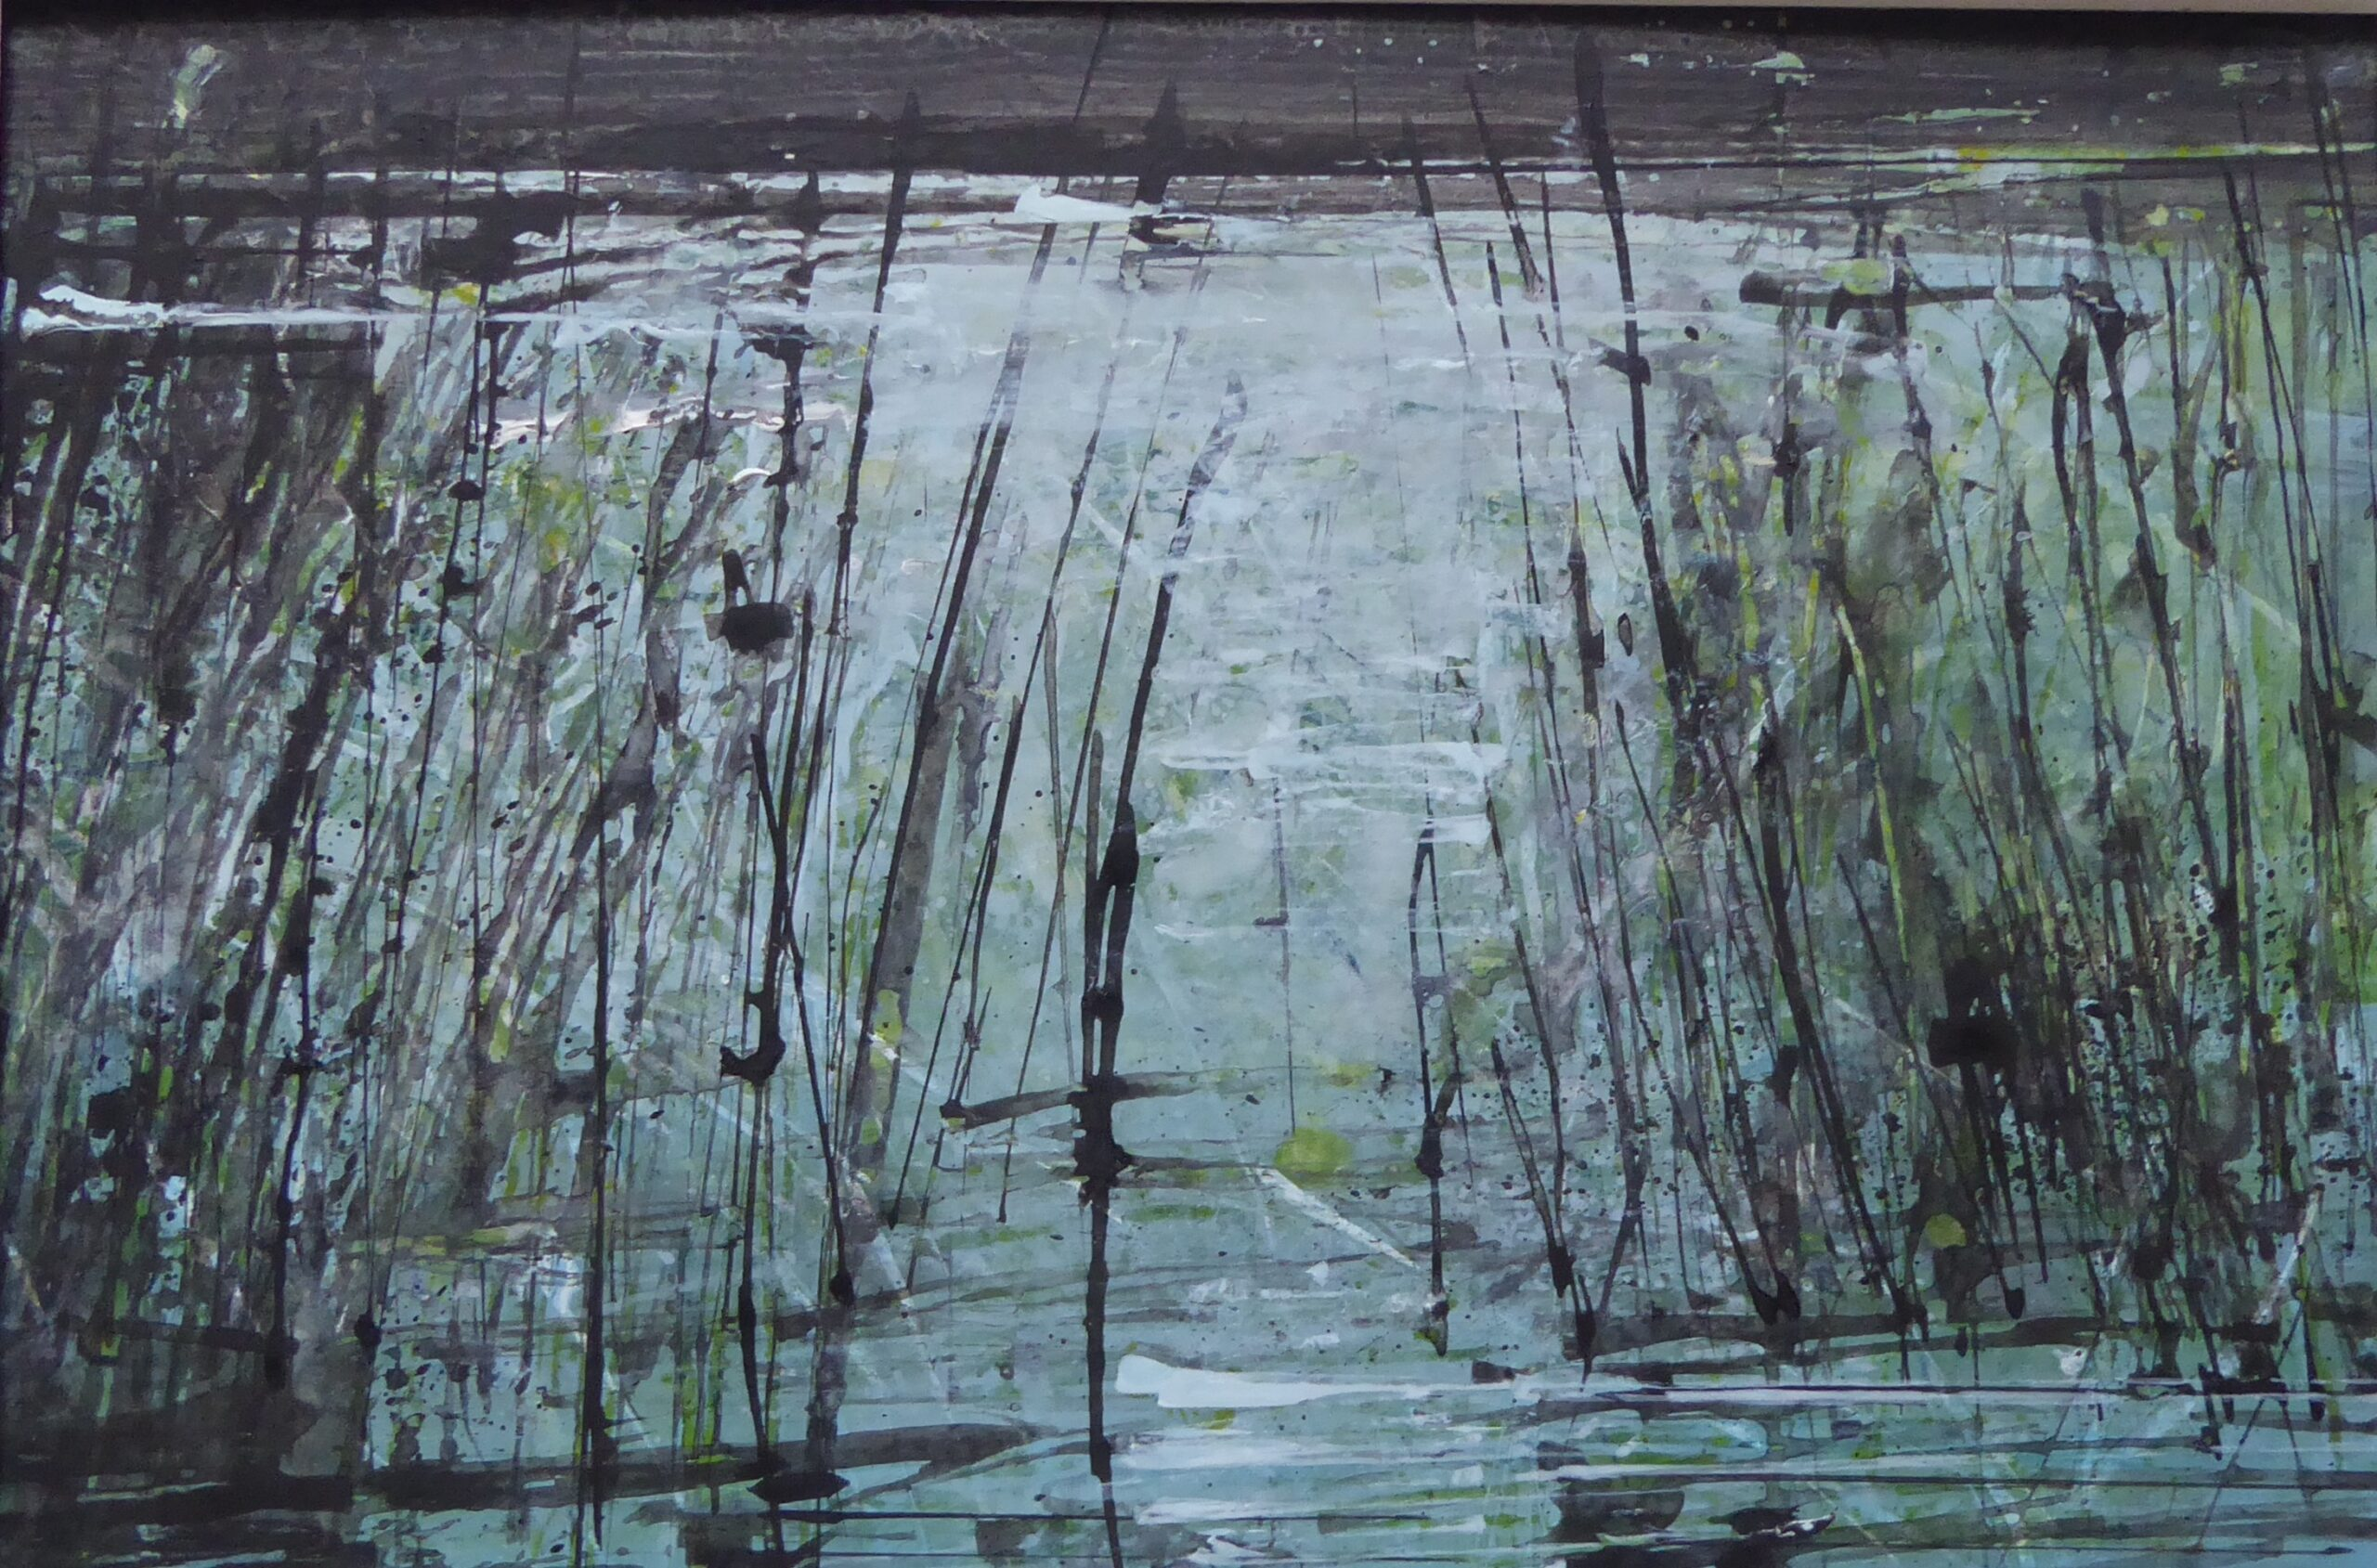 River bank reeds 2 , 2020 Ann Kilvington RI Watercolour, 18 x 20 cm